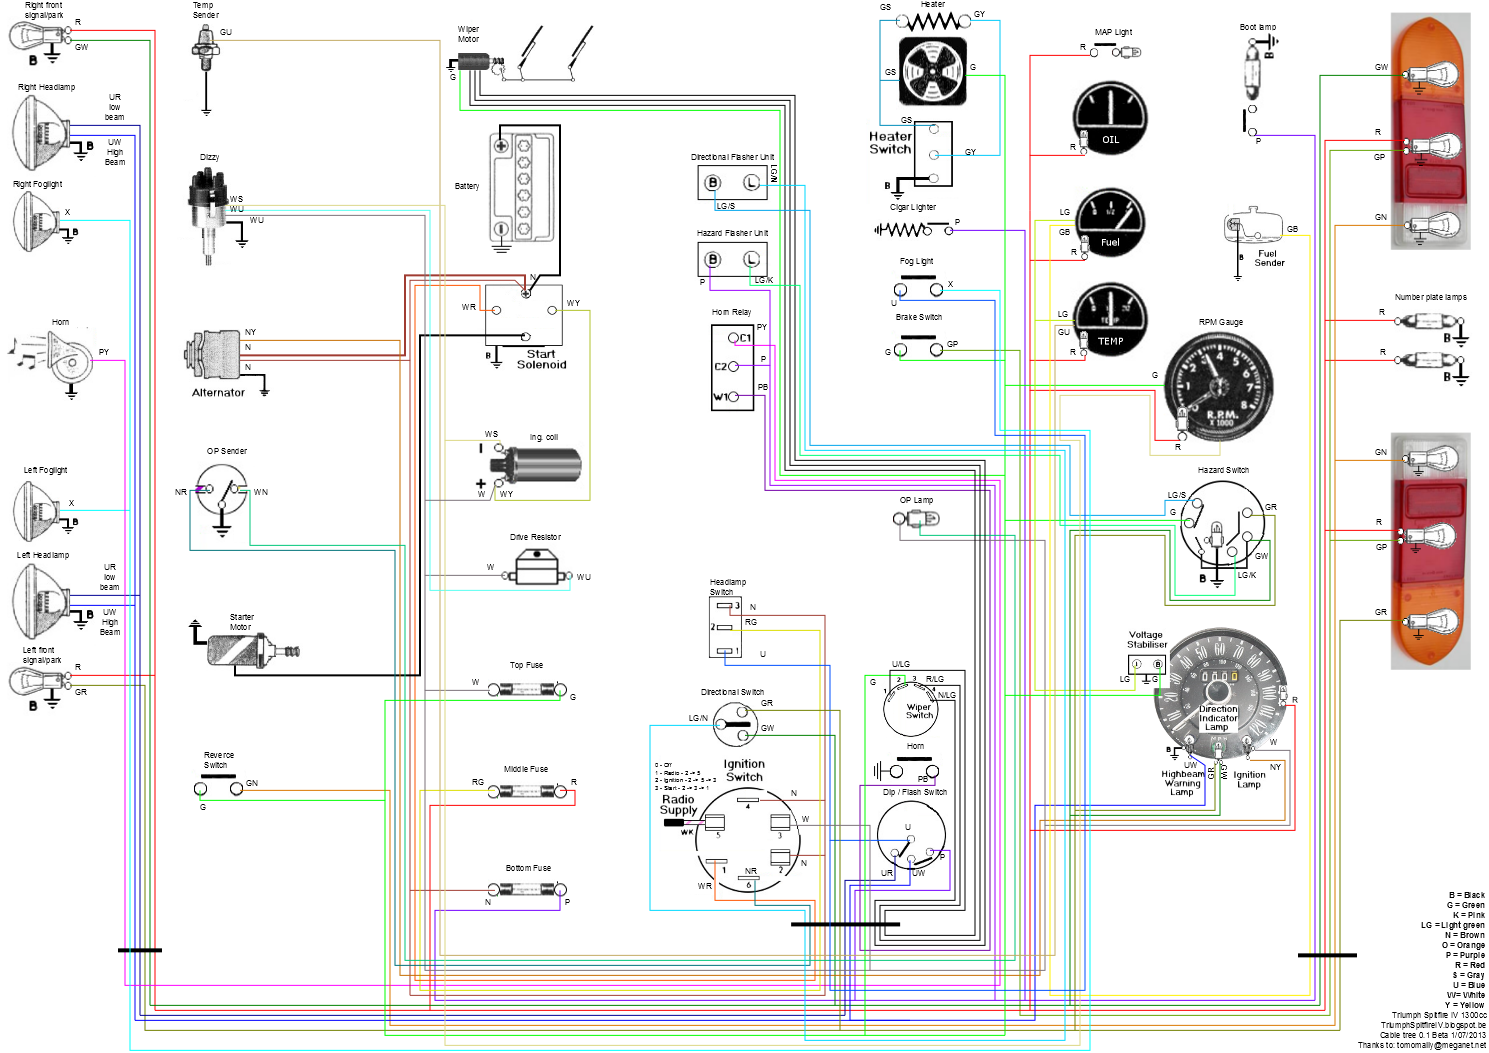 spitfire iv wiring diagram spitfire mkiv wiring diagram how to library the triumph experience triumph tr4a wiring diagram at eliteediting.co